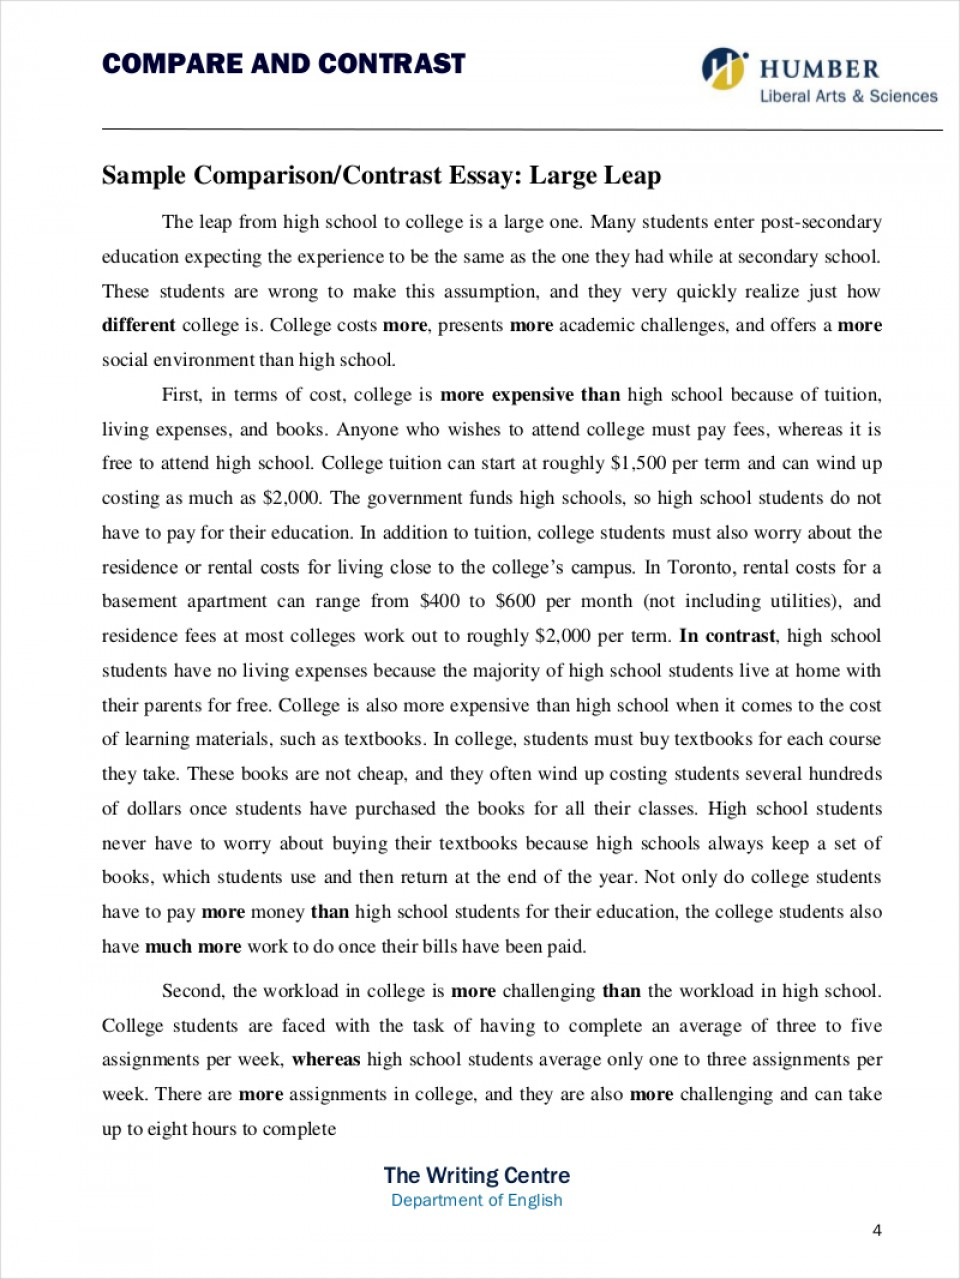 014 How To Write Compare And Contrast Essay Example Comparative Samples Free Pdf Format Download Throughout Examples Comparison Thesis Coles Thecolossus Co Within Ex Outstanding A Outline Powerpoint Introduction 960